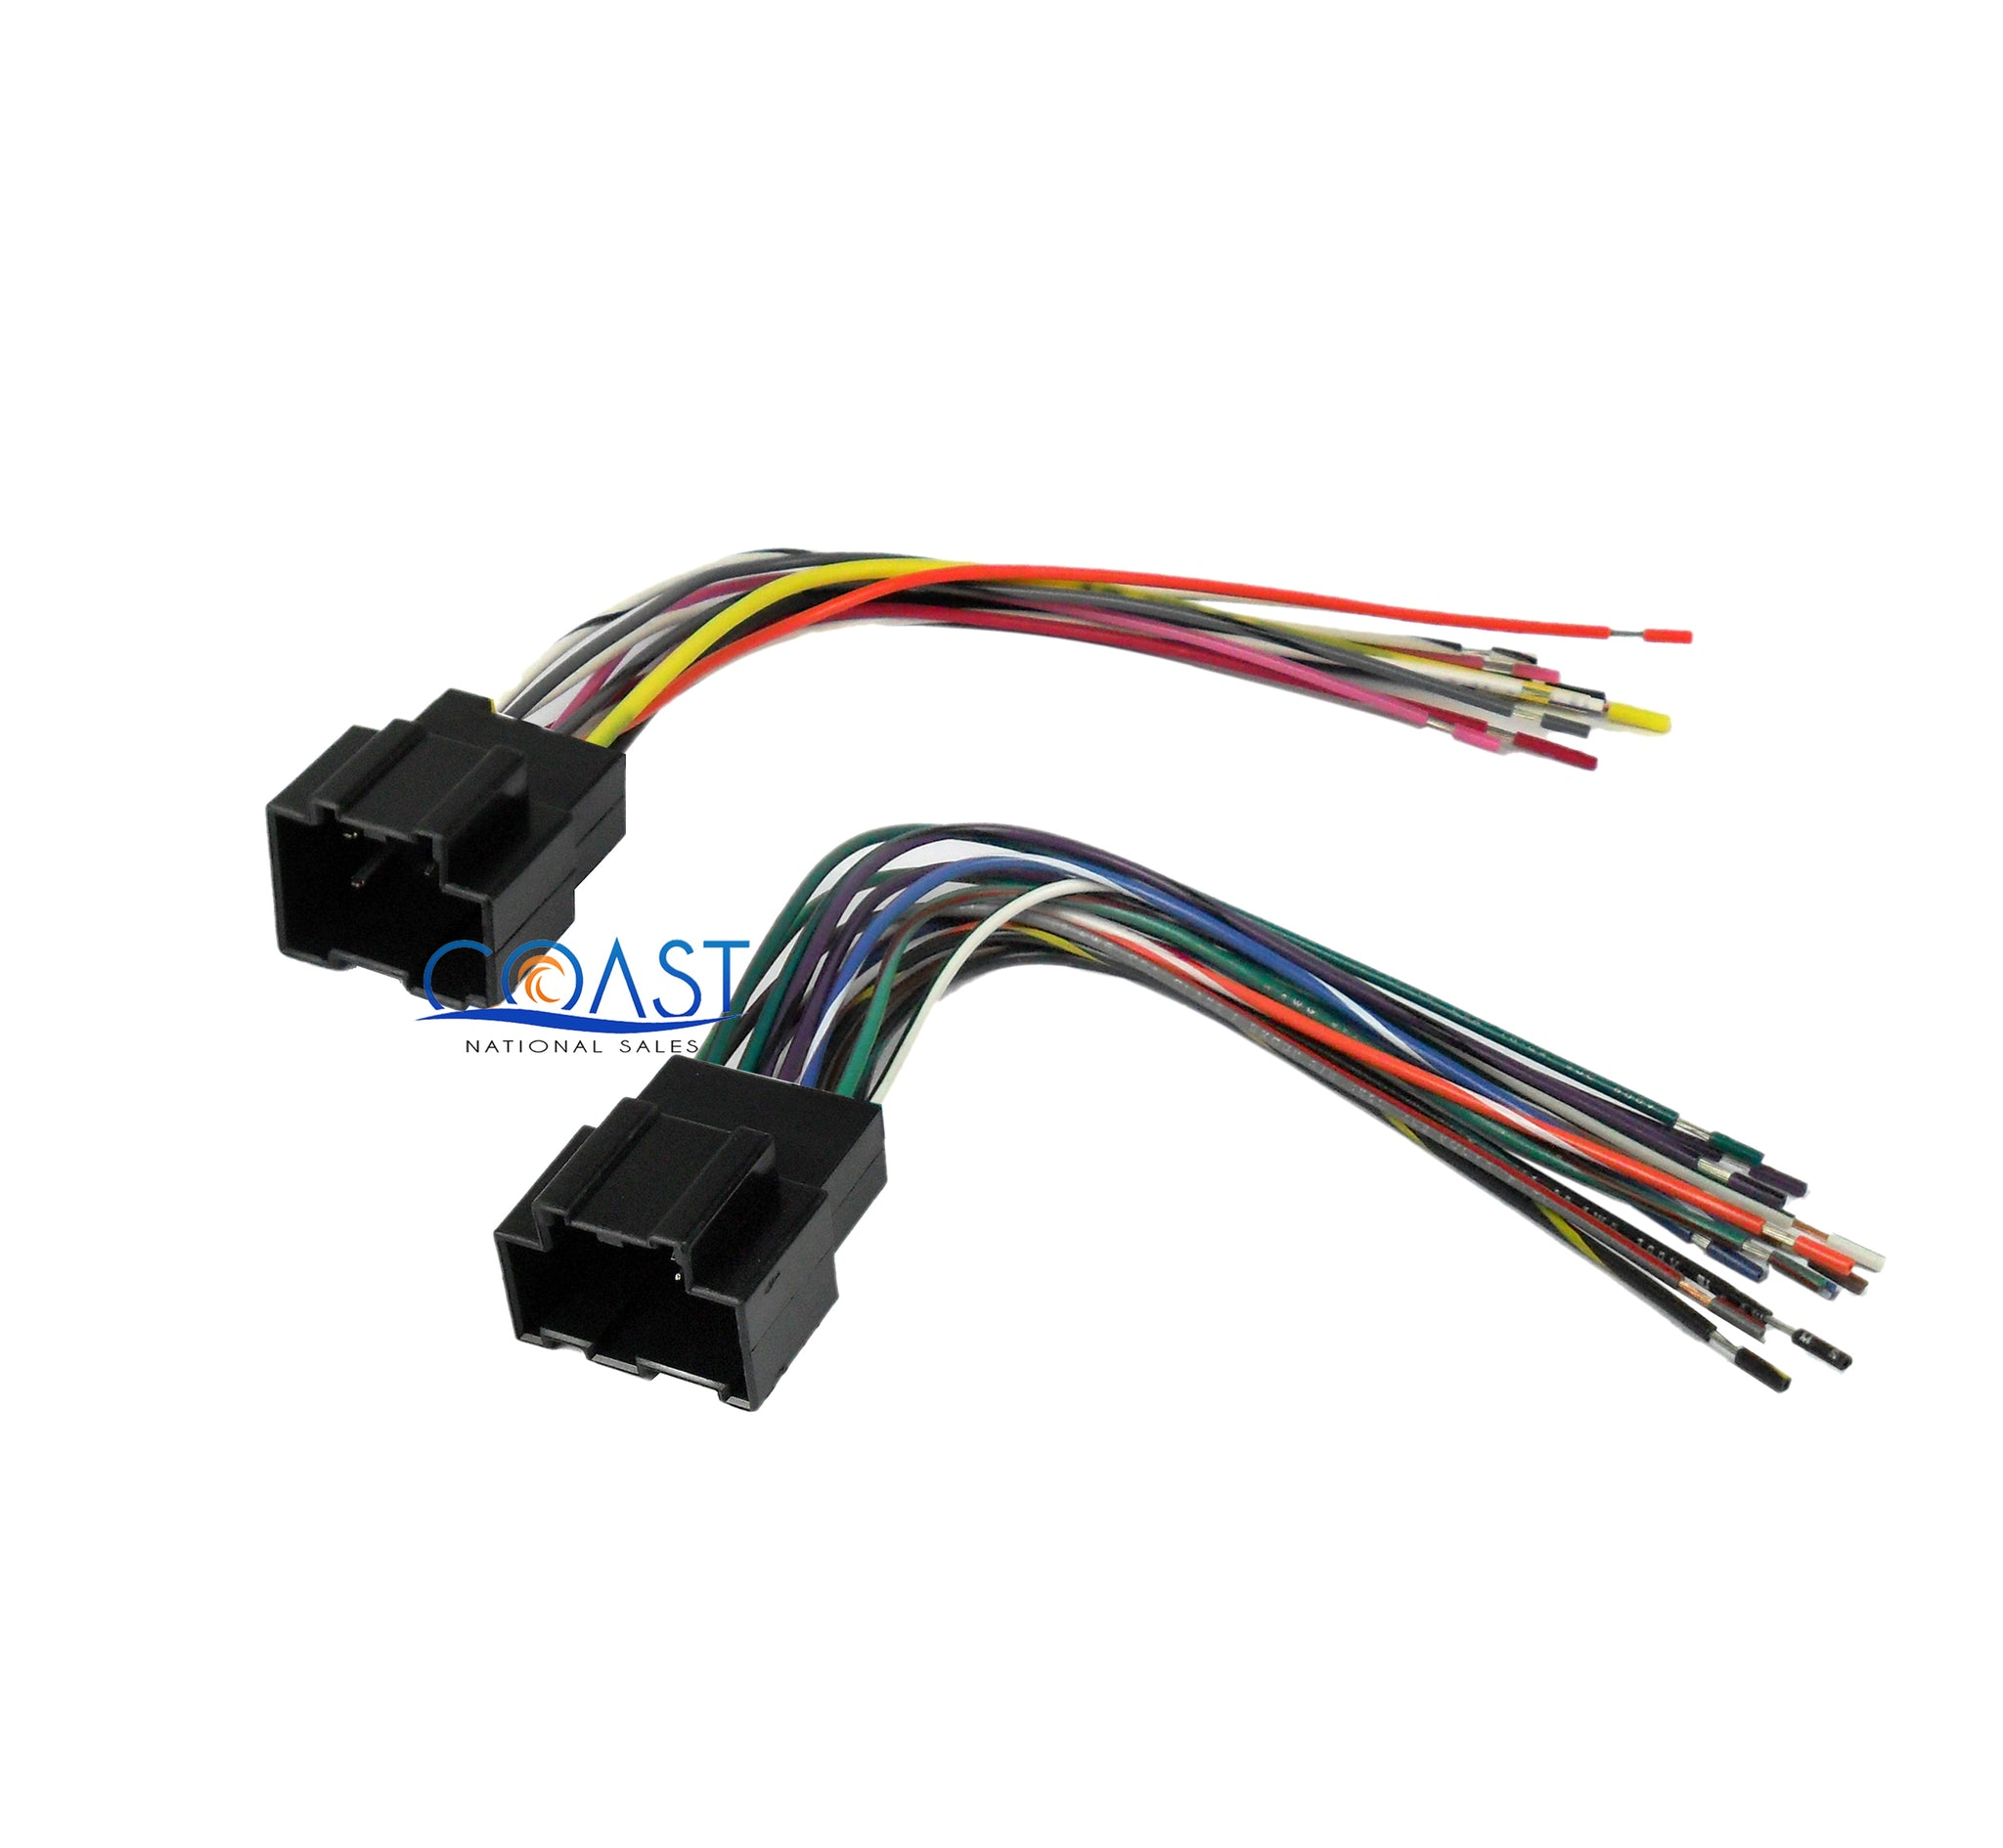 Car Radio Stereo Double Din Dash Kit Wire Harness for 2006-2007 Saturn on toyota tundra wiring harness, chevy cobalt wiring harness, saturn radio wiring harness, chevy aveo wiring harness, mercury sable wiring harness, kia spectra wiring harness, saturn vue wiring harness, volkswagen type 3 wiring harness, saab 900 wiring harness, honda ridgeline wiring harness, dodge dart wiring harness, saturn ion radio harness, mazda 3 wiring harness, dodge durango wiring harness, hummer h2 wiring harness, toyota tacoma wiring harness, amc amx wiring harness, suzuki kizashi wiring harness, infiniti g35 wiring harness, honda accord wiring harness,